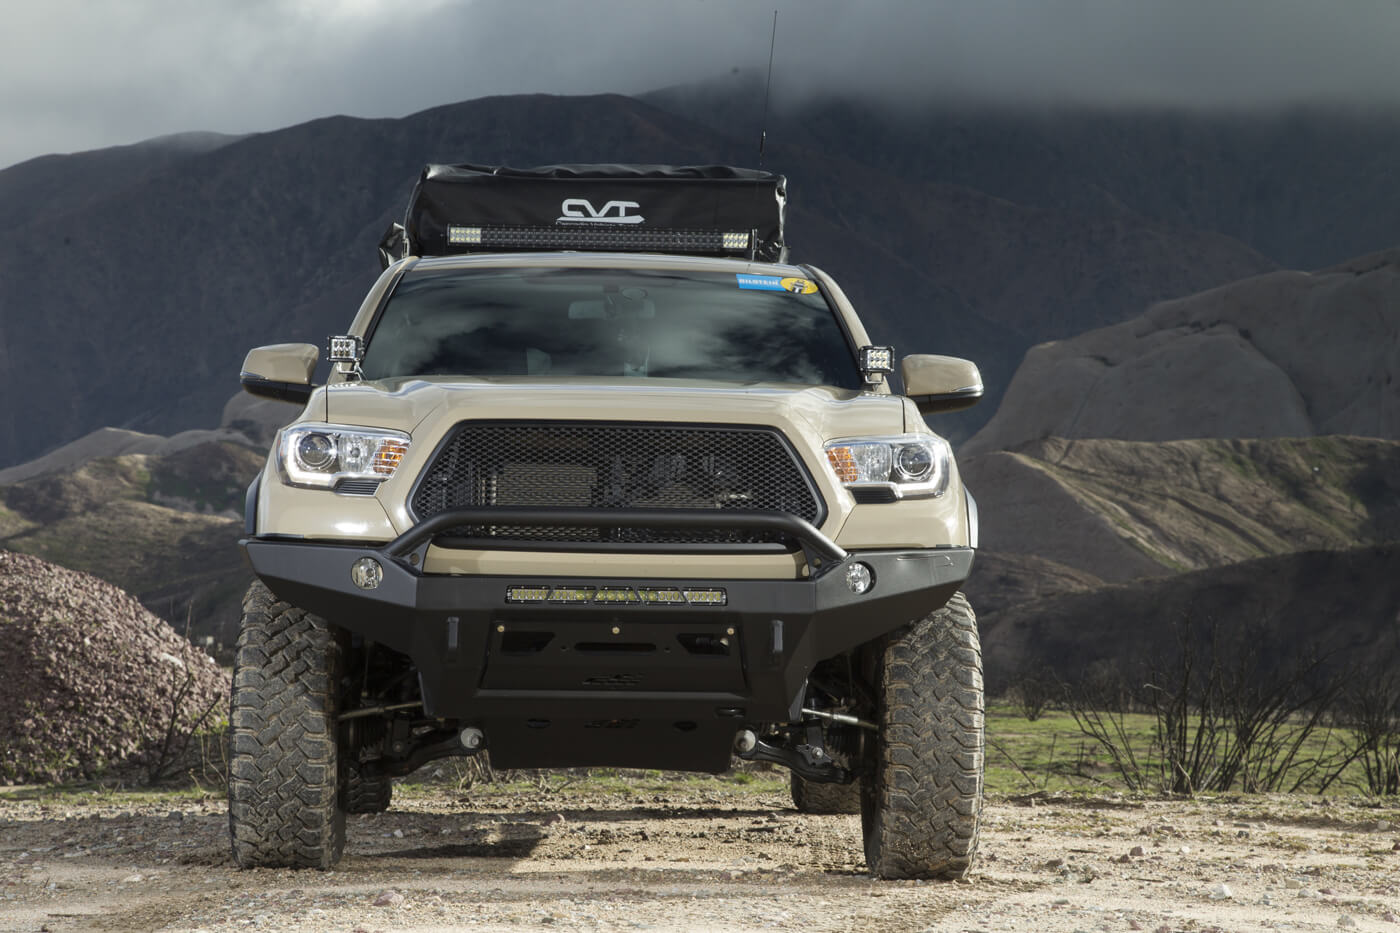 Quicksand: From the Desert to the Show in a 2016 Tacoma